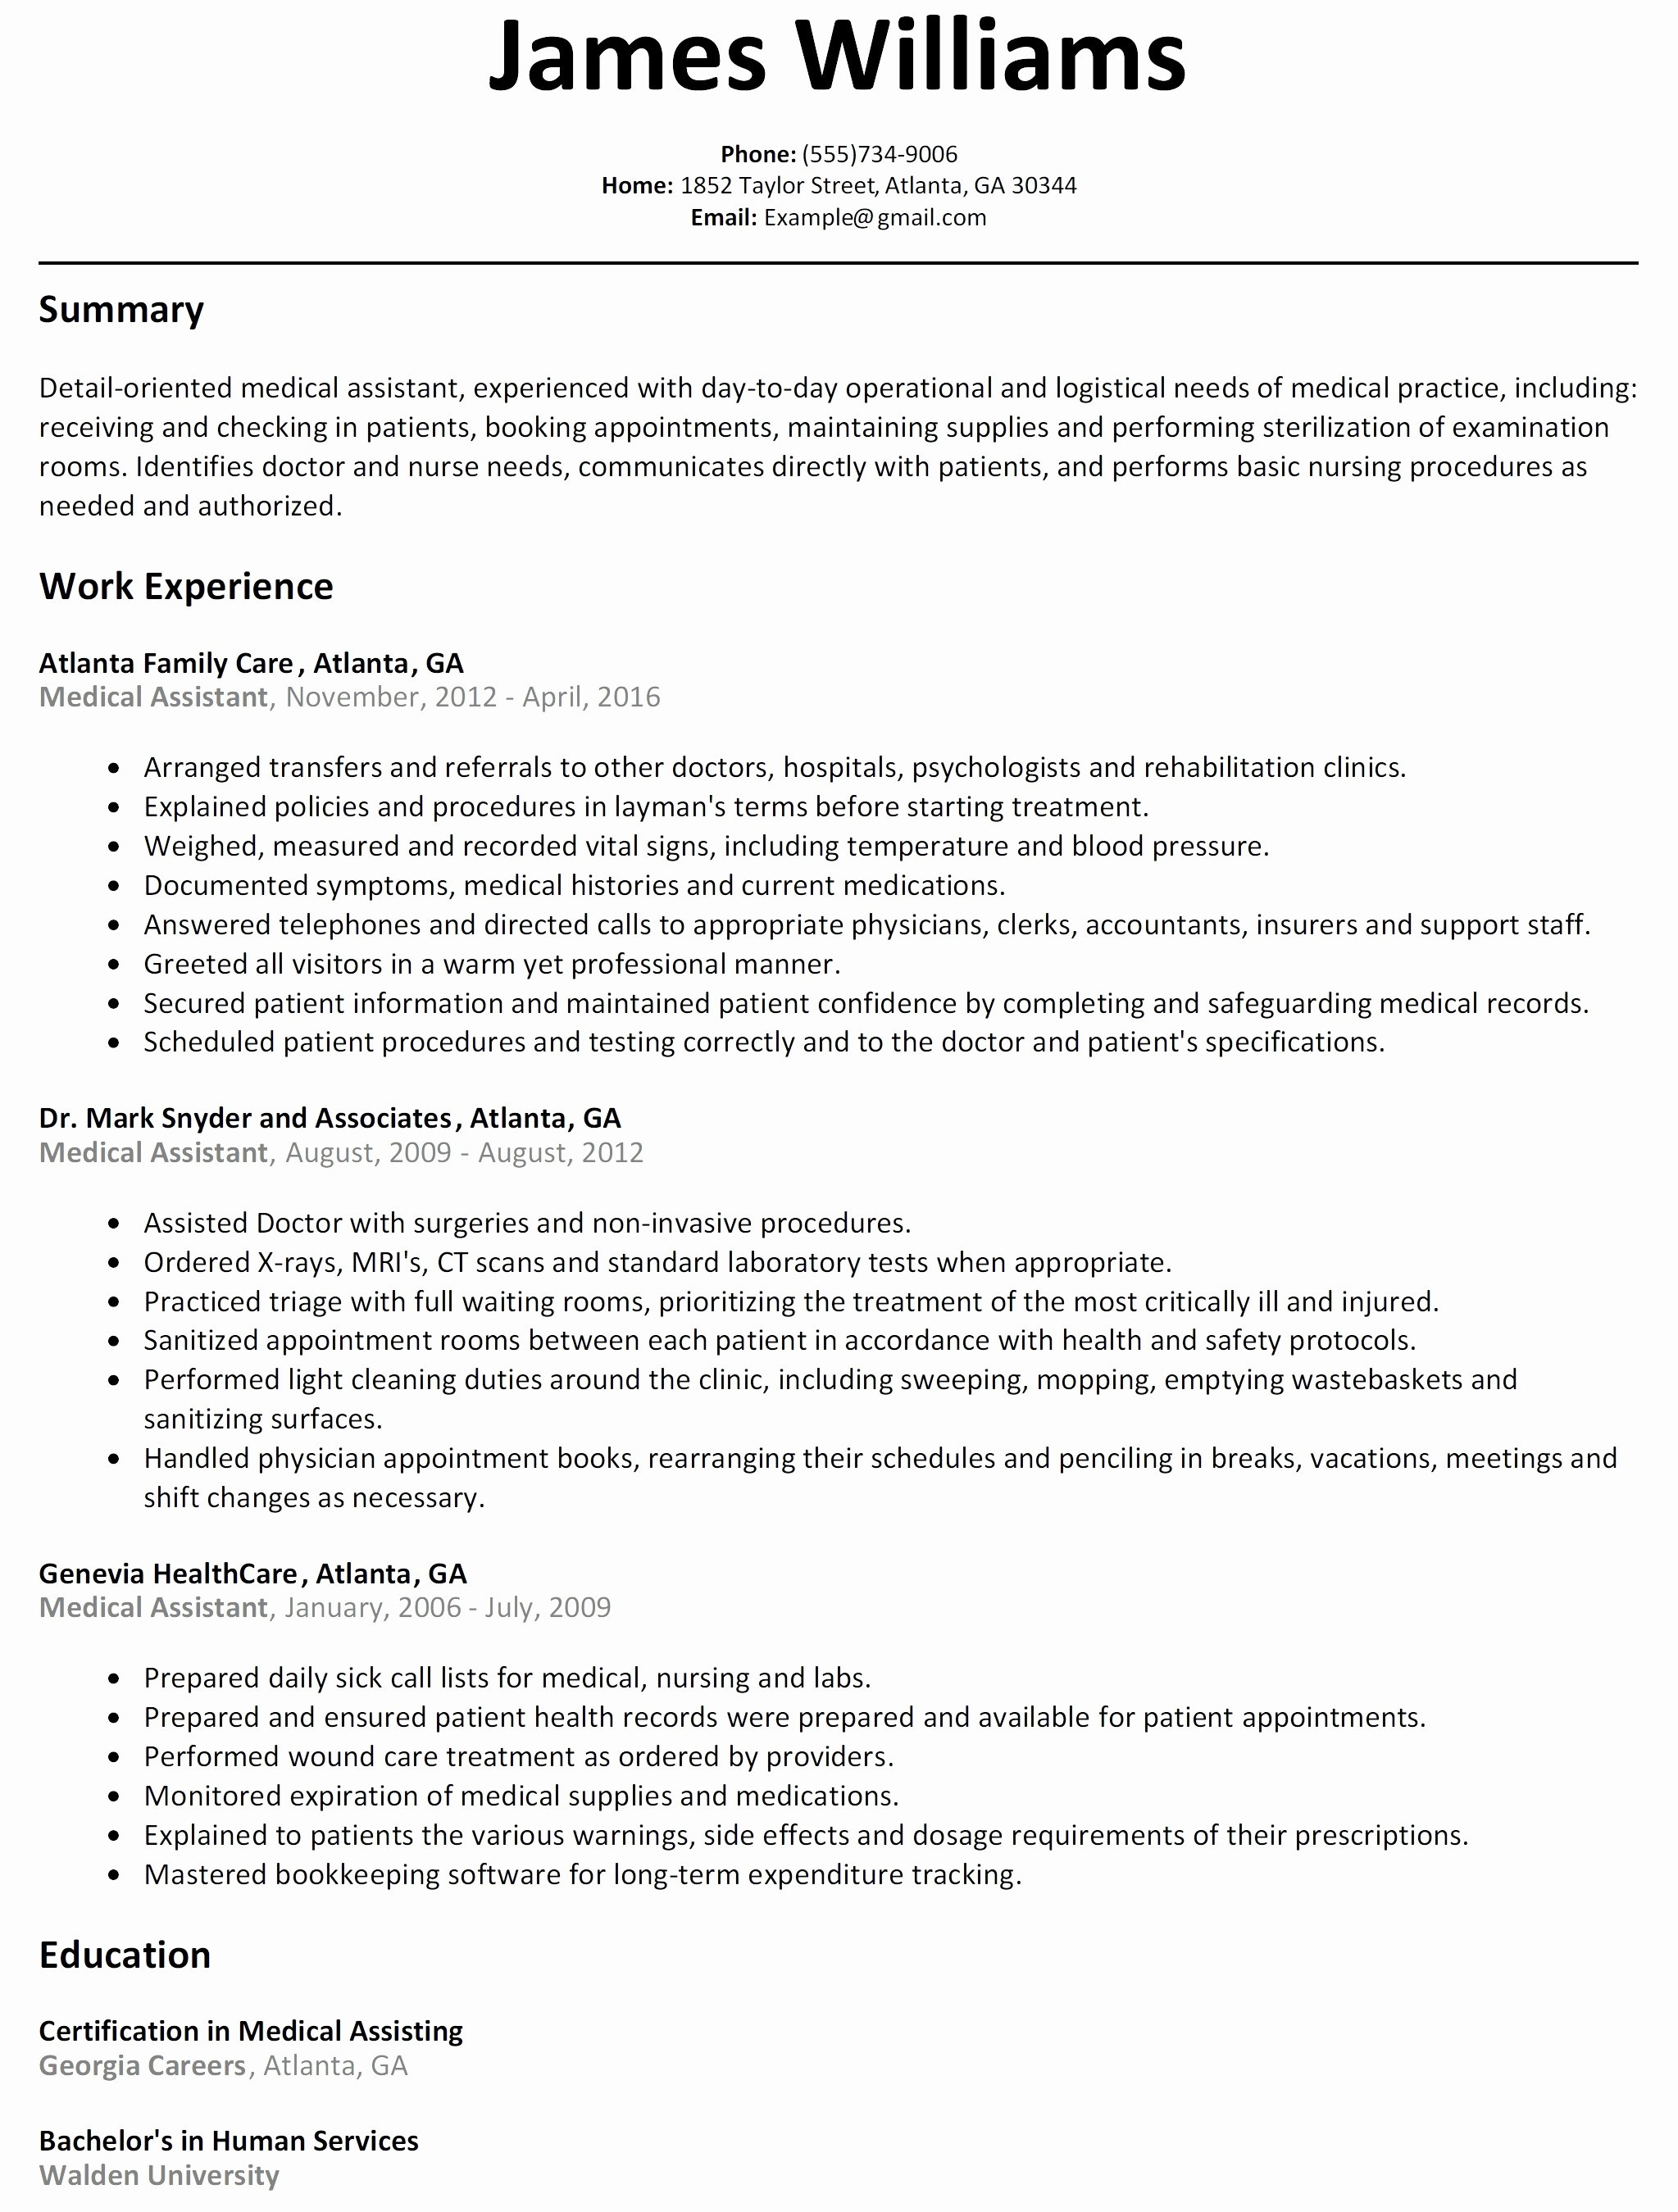 Resume Cover Letter Template for Medical assistant - Medical asistant Resume Myacereporter Myacereporter